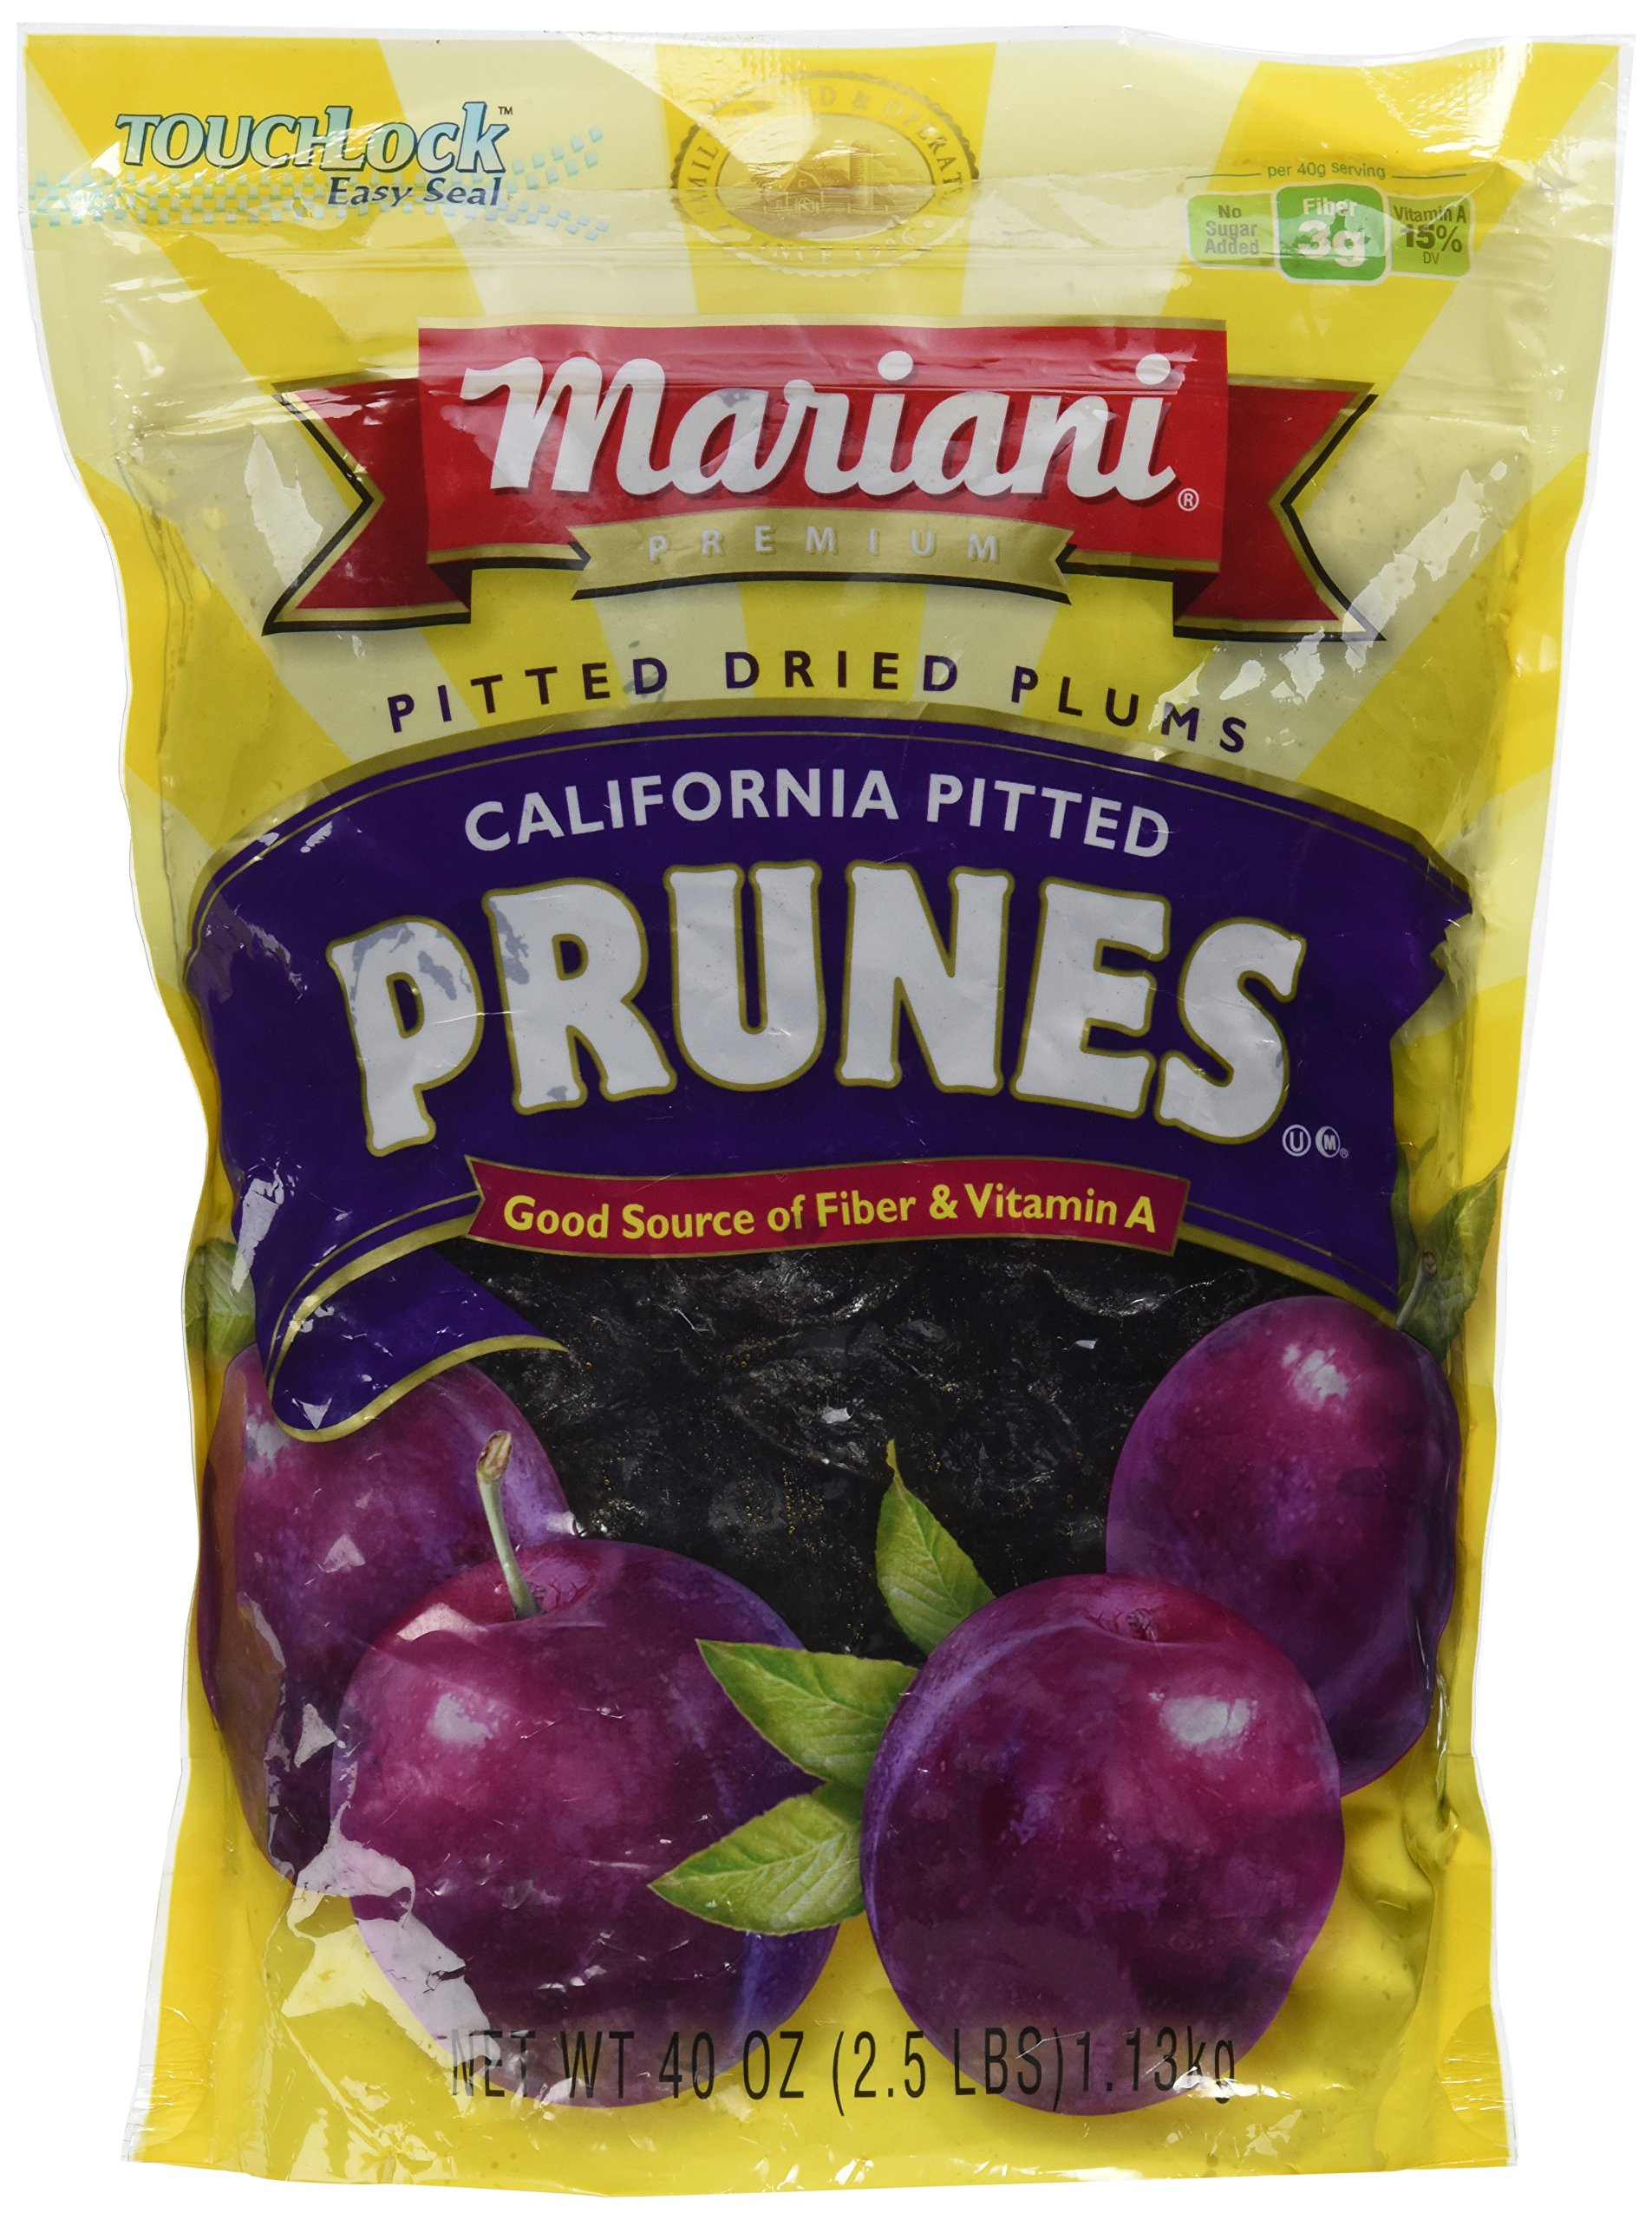 Mariani Pitted Dried Prunes - 40 Oz. Bag by Mariani